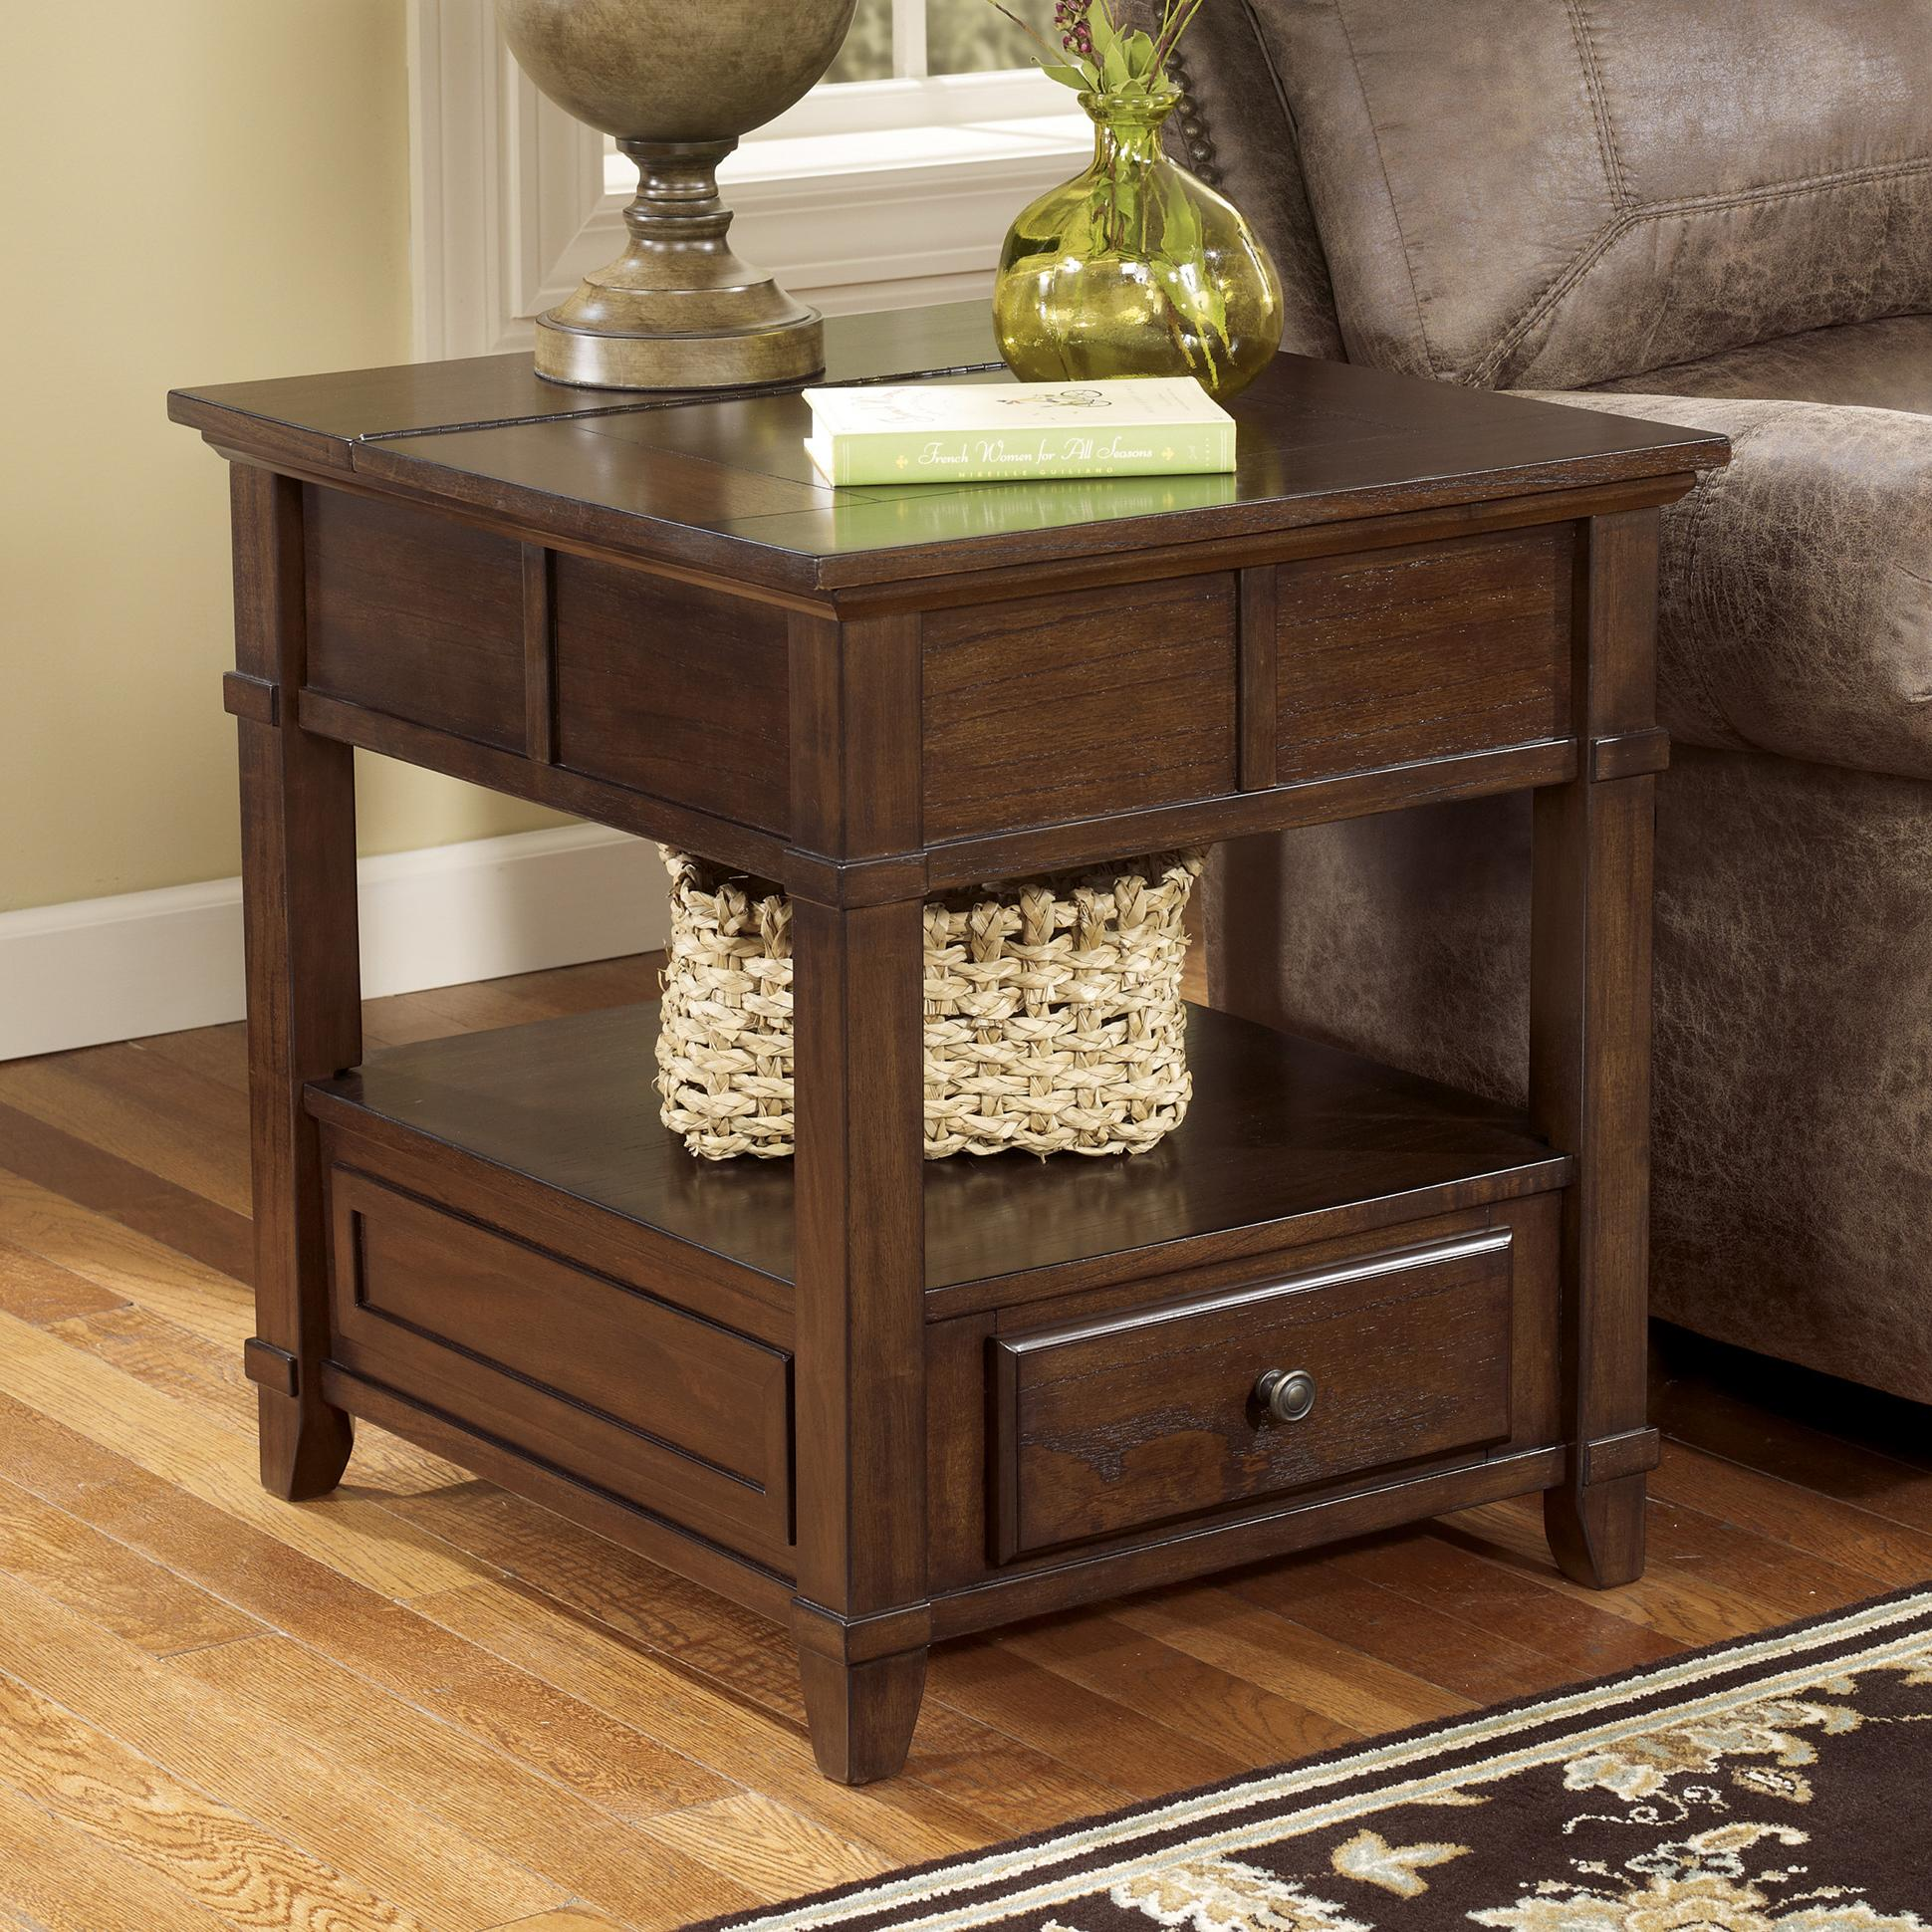 signature design ashley gately end table with hidden storage products color tables coffee sofa diy crate wall mounted nightstand life odd shaped chainsaw log furniture metal pipe